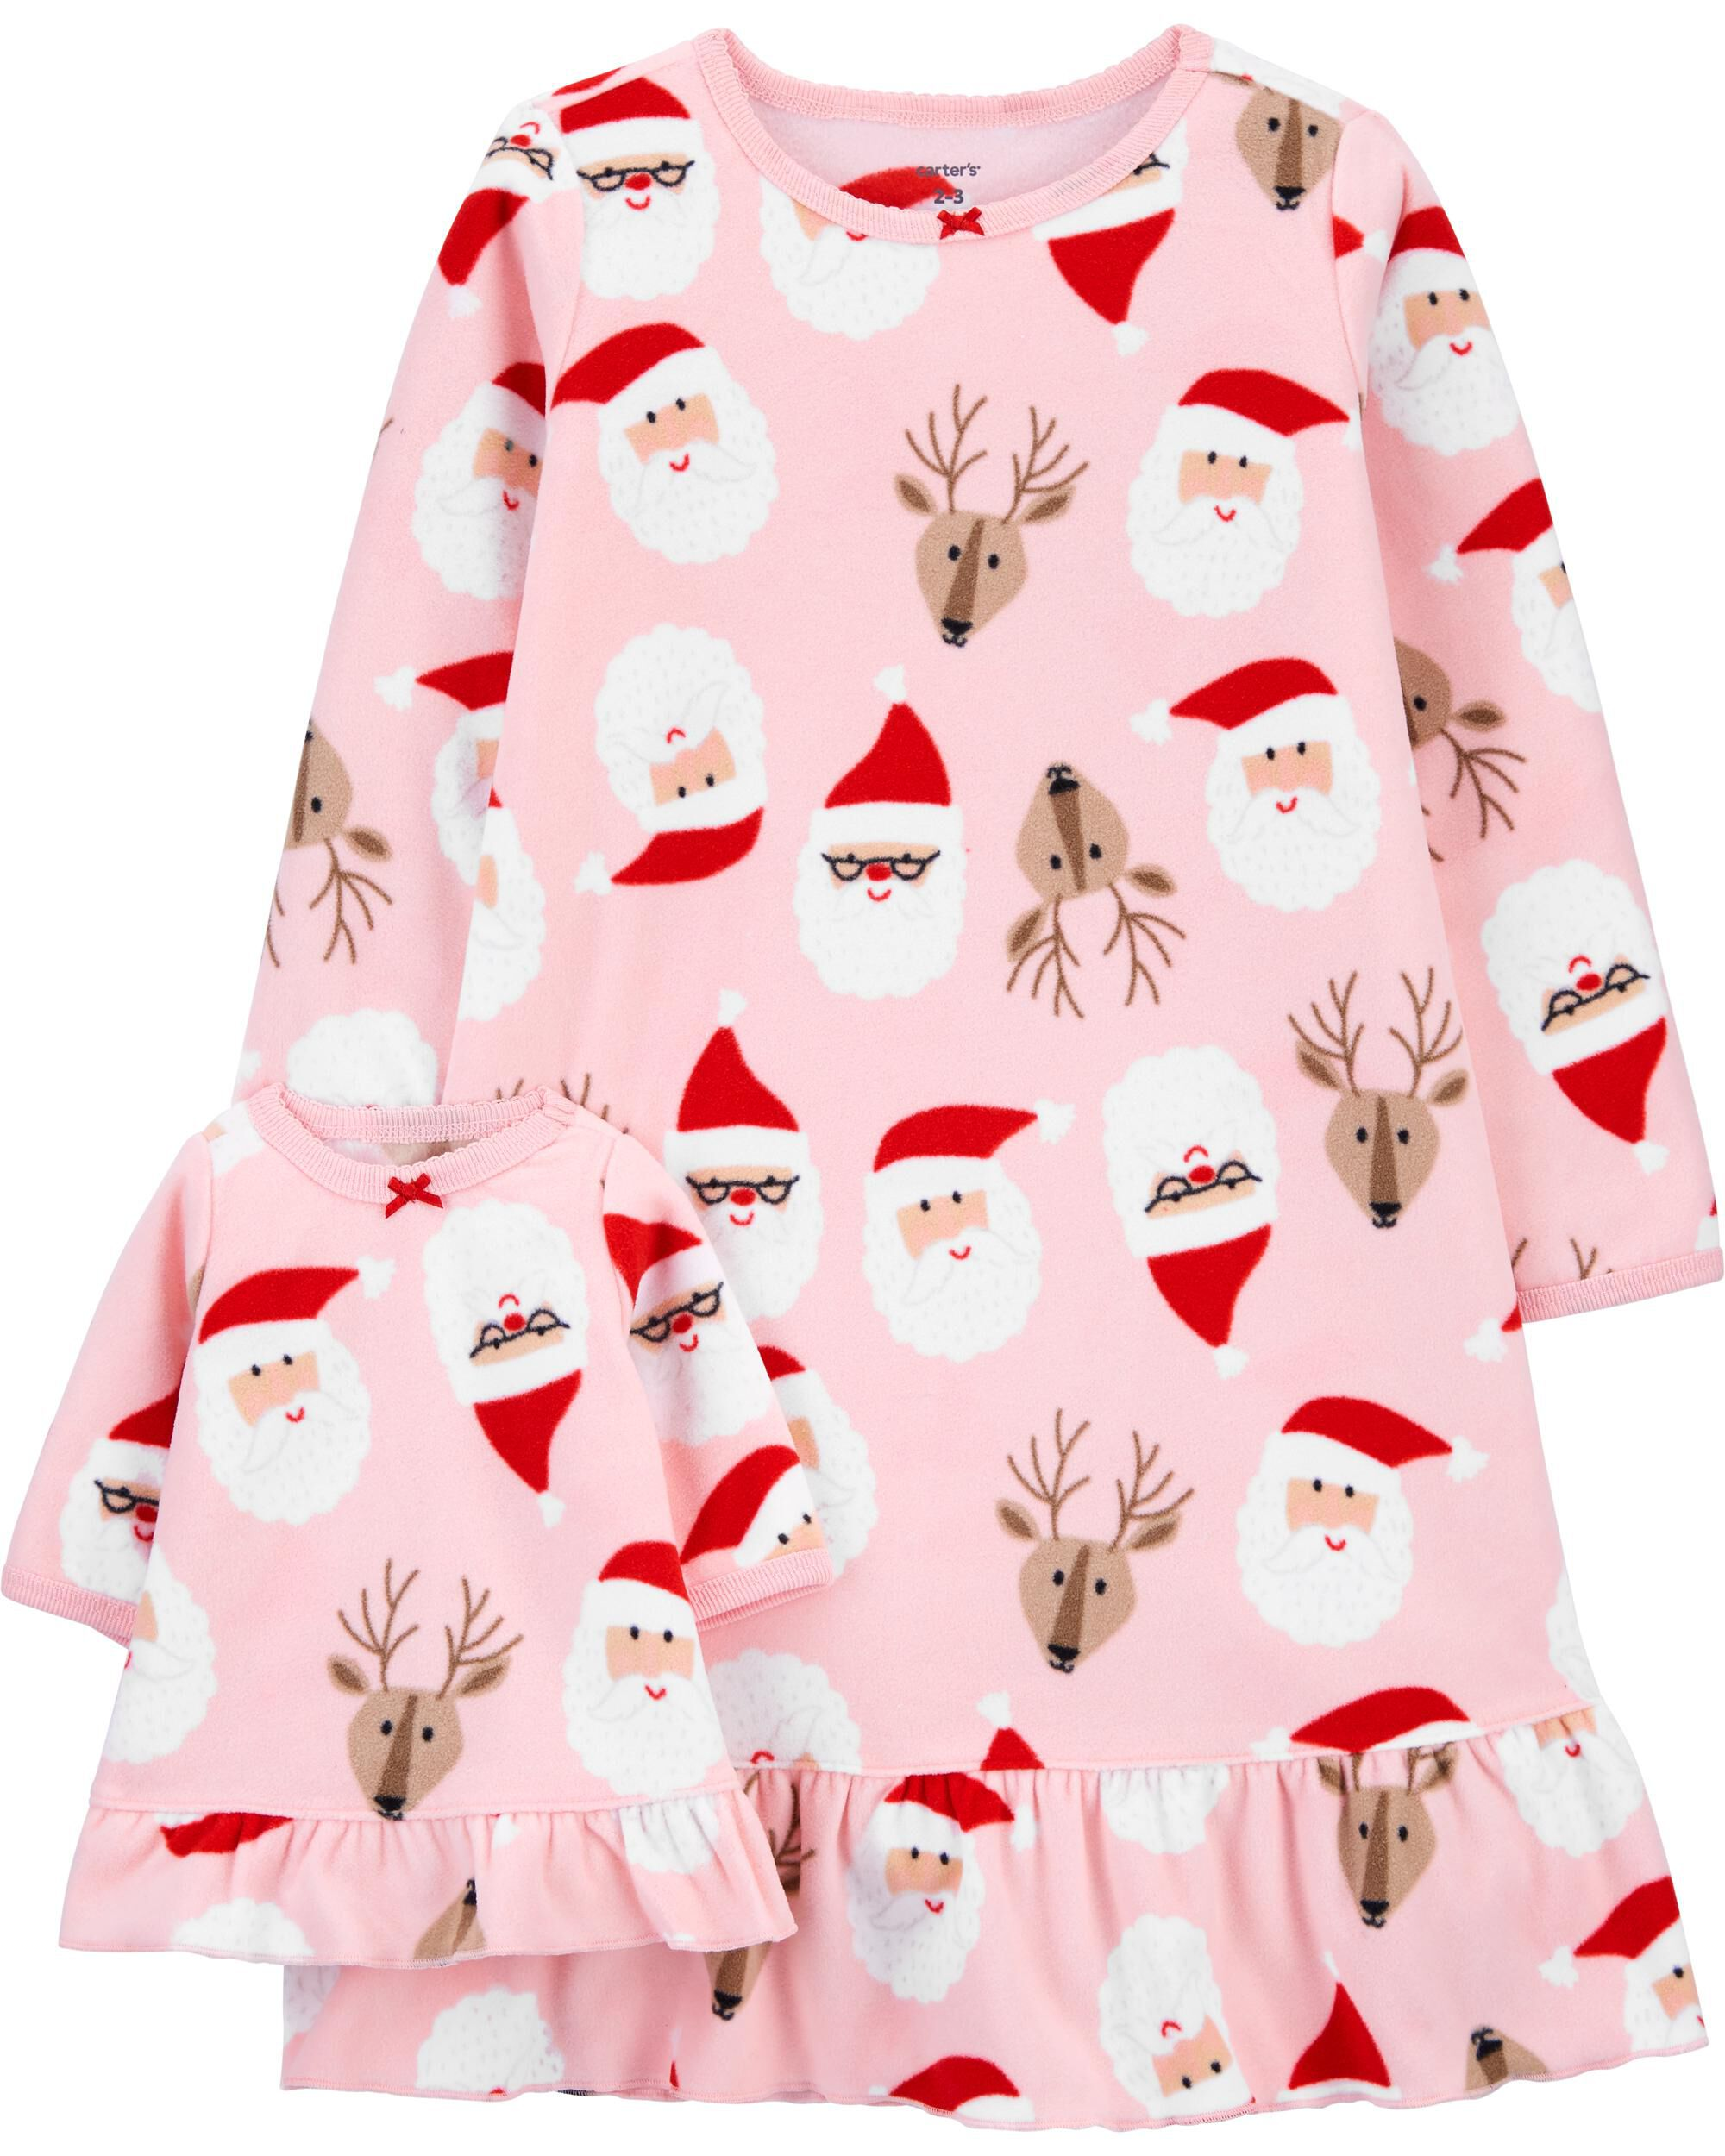 Christmas Matching Nightgown & Doll Nightgown Set